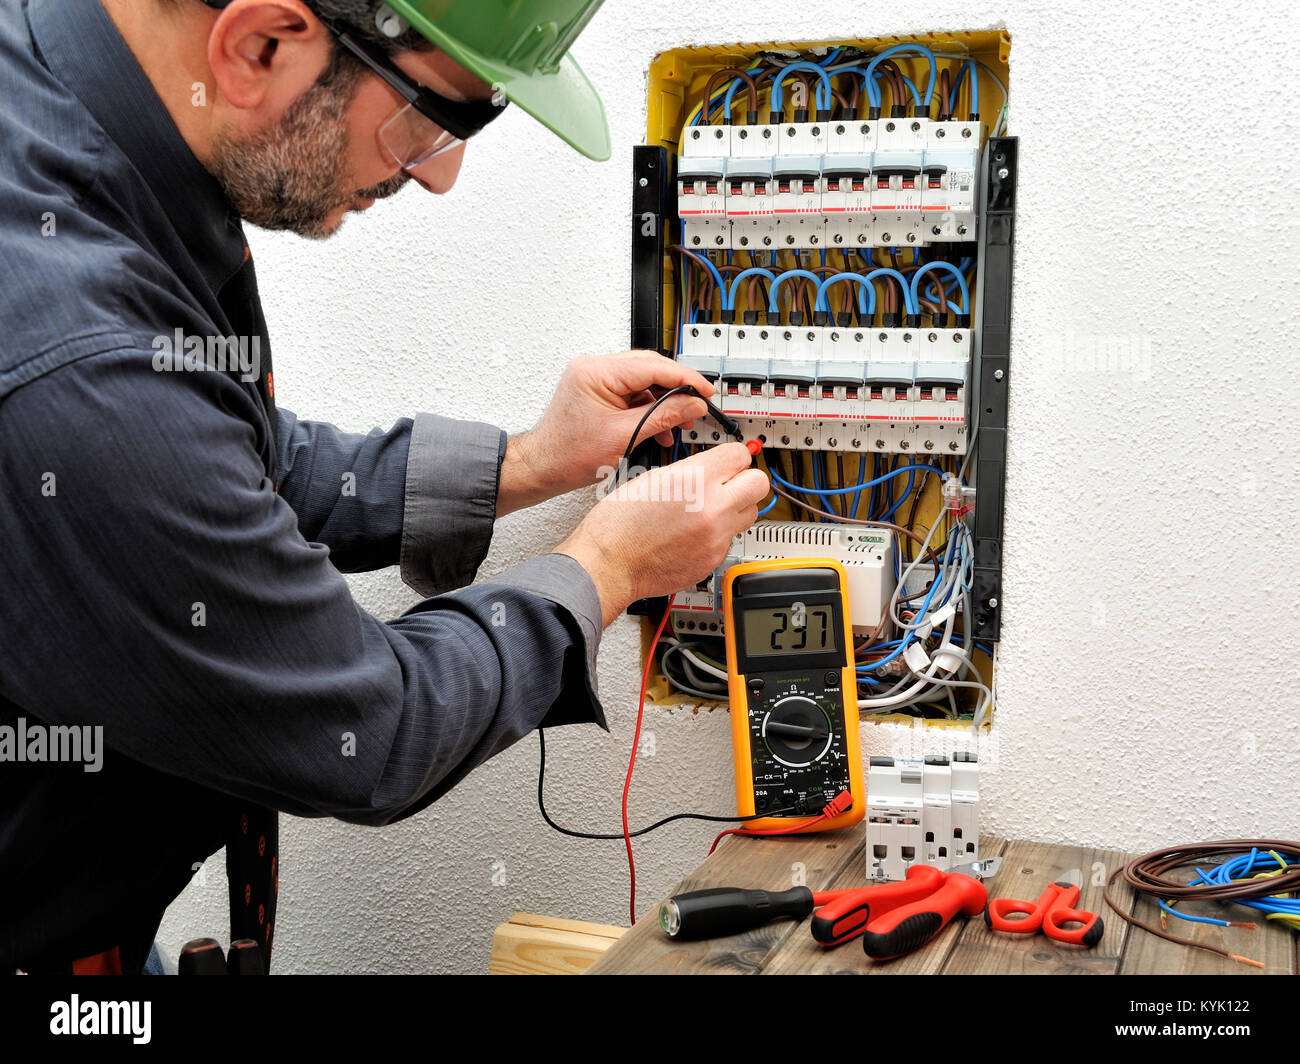 Technical electrician measures the voltage of a circuit breaker of a residential electrical panel - Stock Image